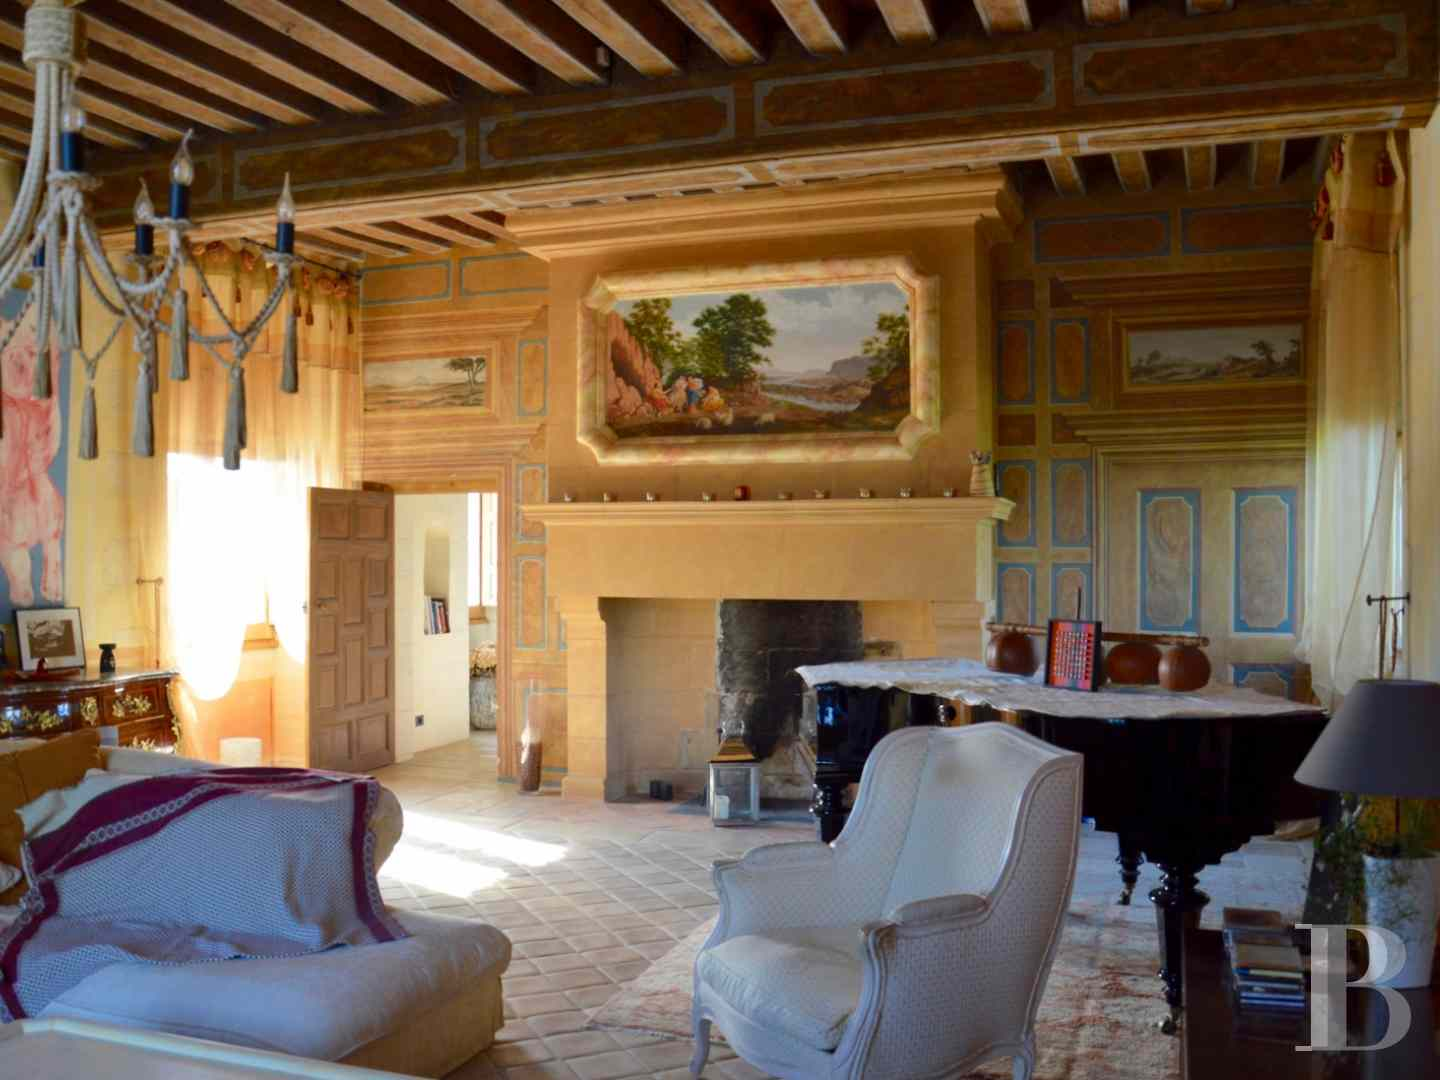 France mansions for sale pays de loire manors historic - 6 zoom